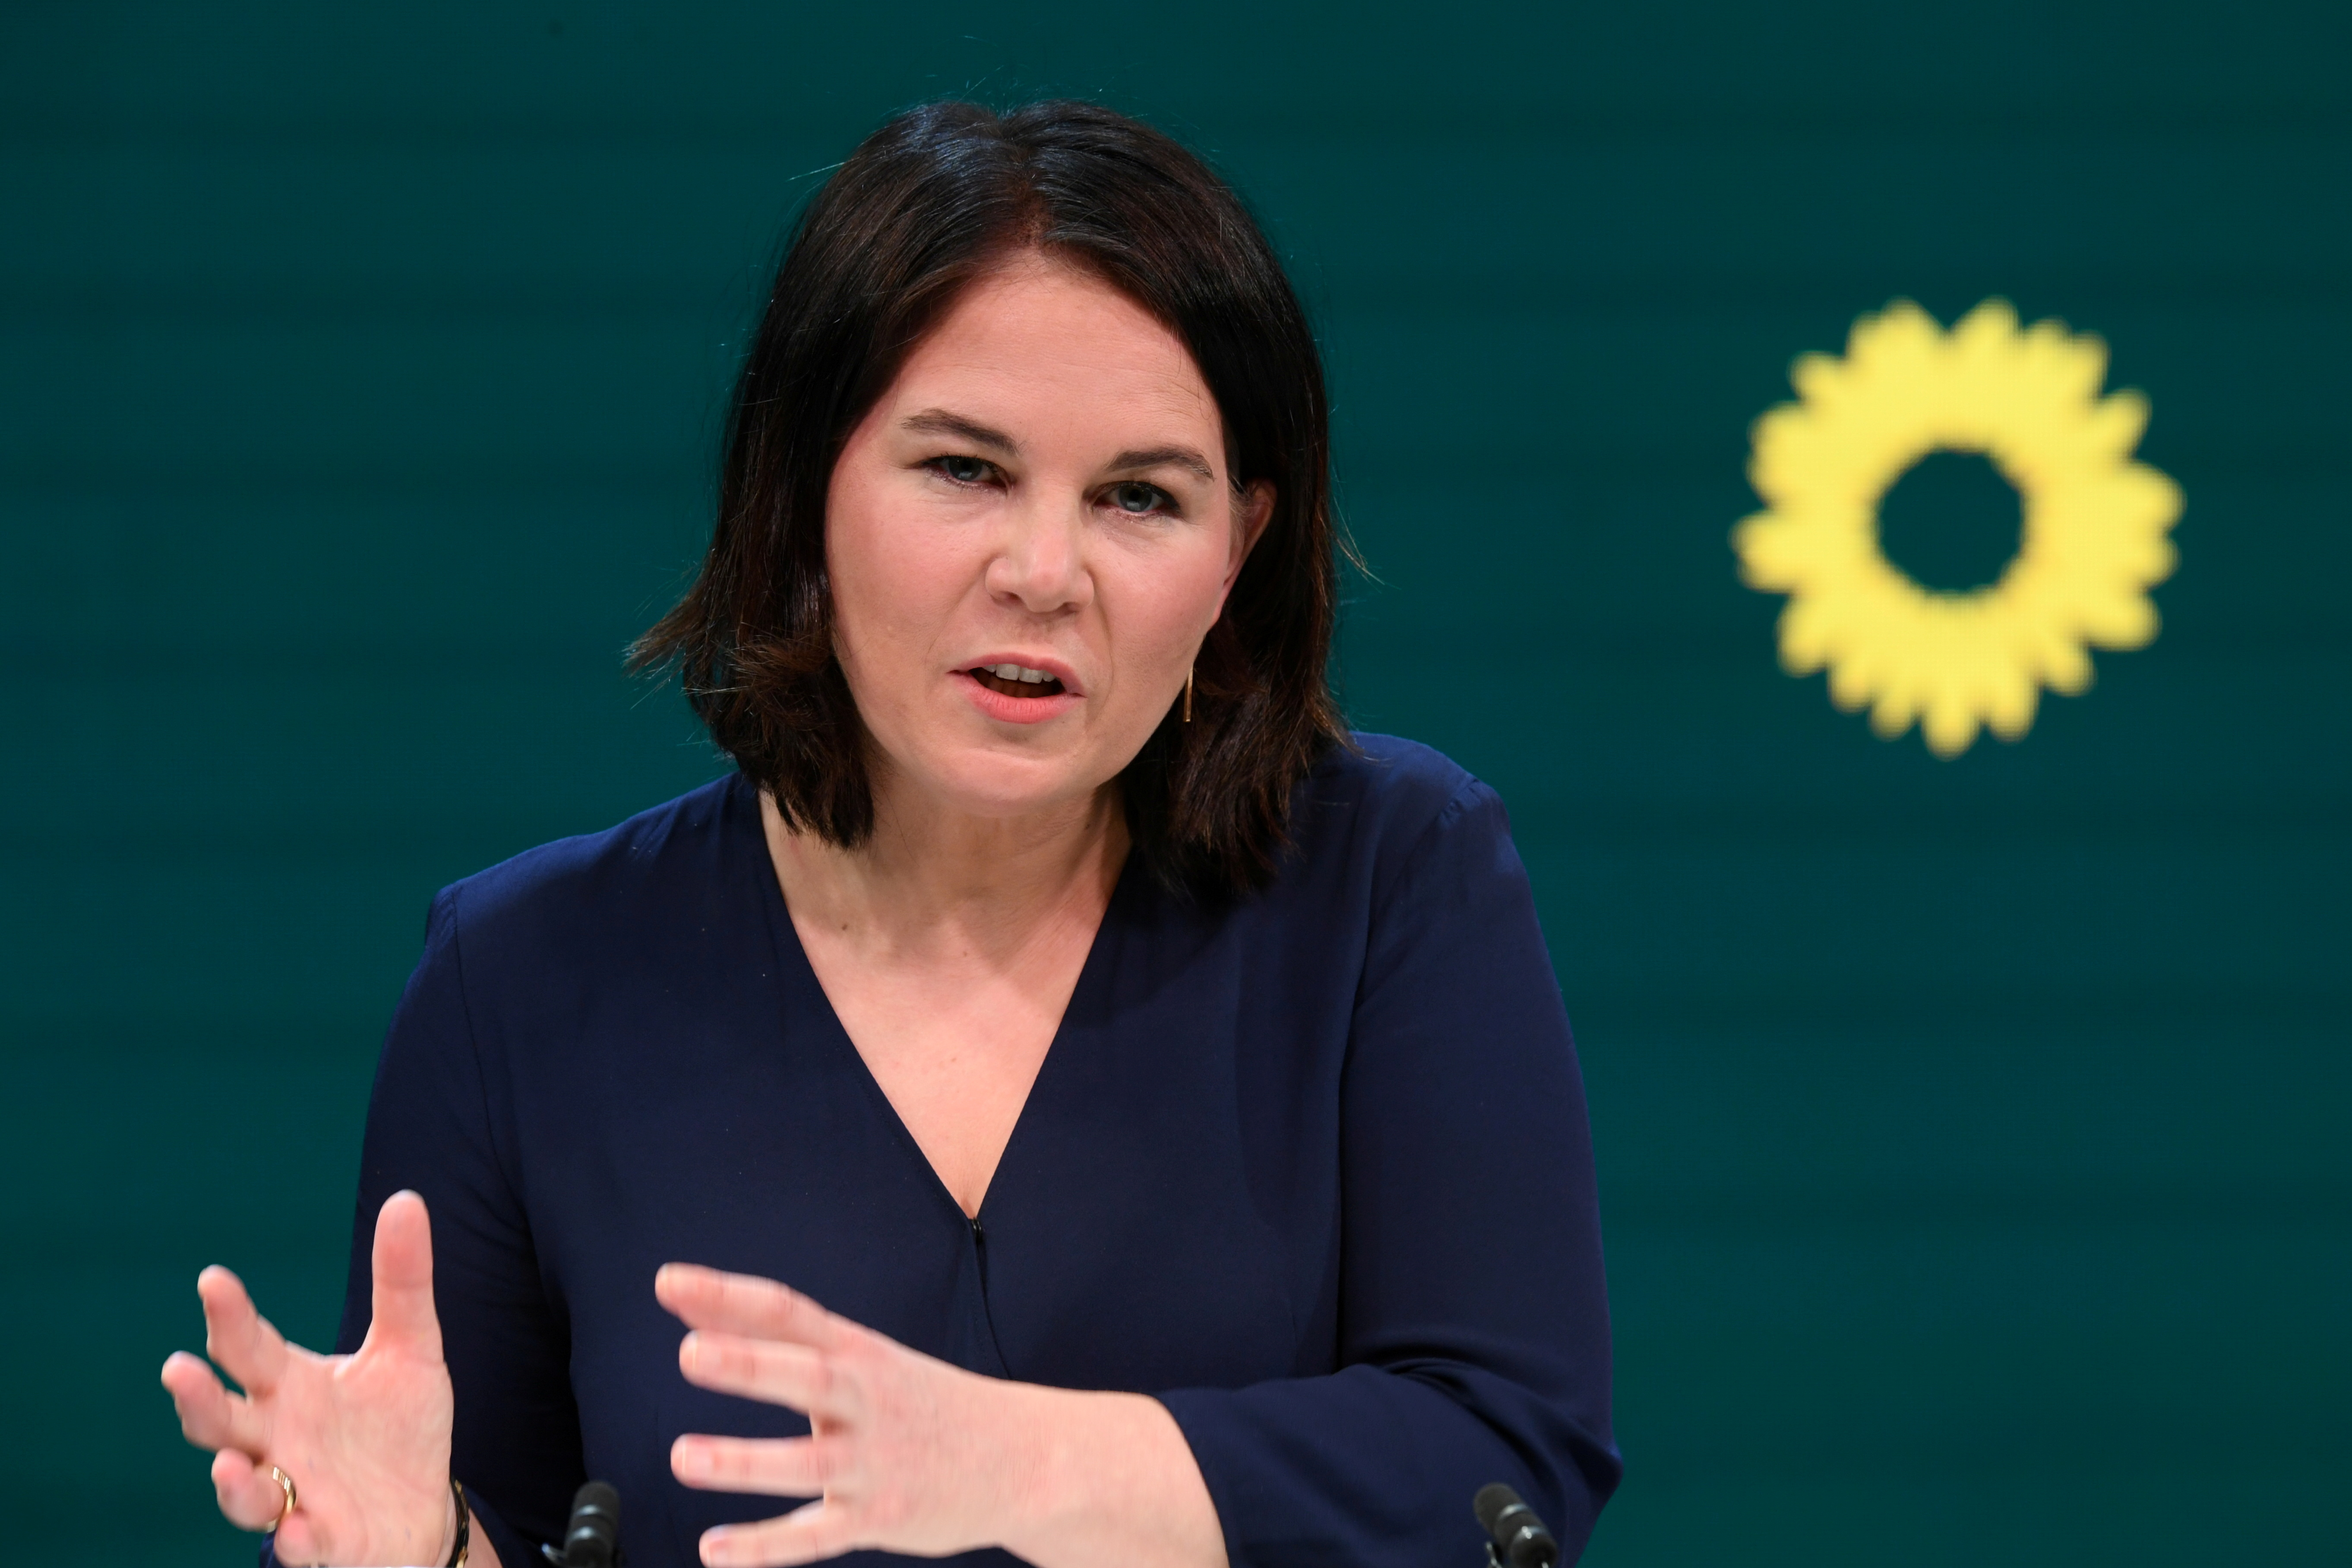 Co-leader of Germany's Green party and designated candidate for chancellor Annalena Baerbock holds a news conference in Berlin, Germany, April 19, 2021. REUTERS/Annegret Hilse/Pool/File Photo